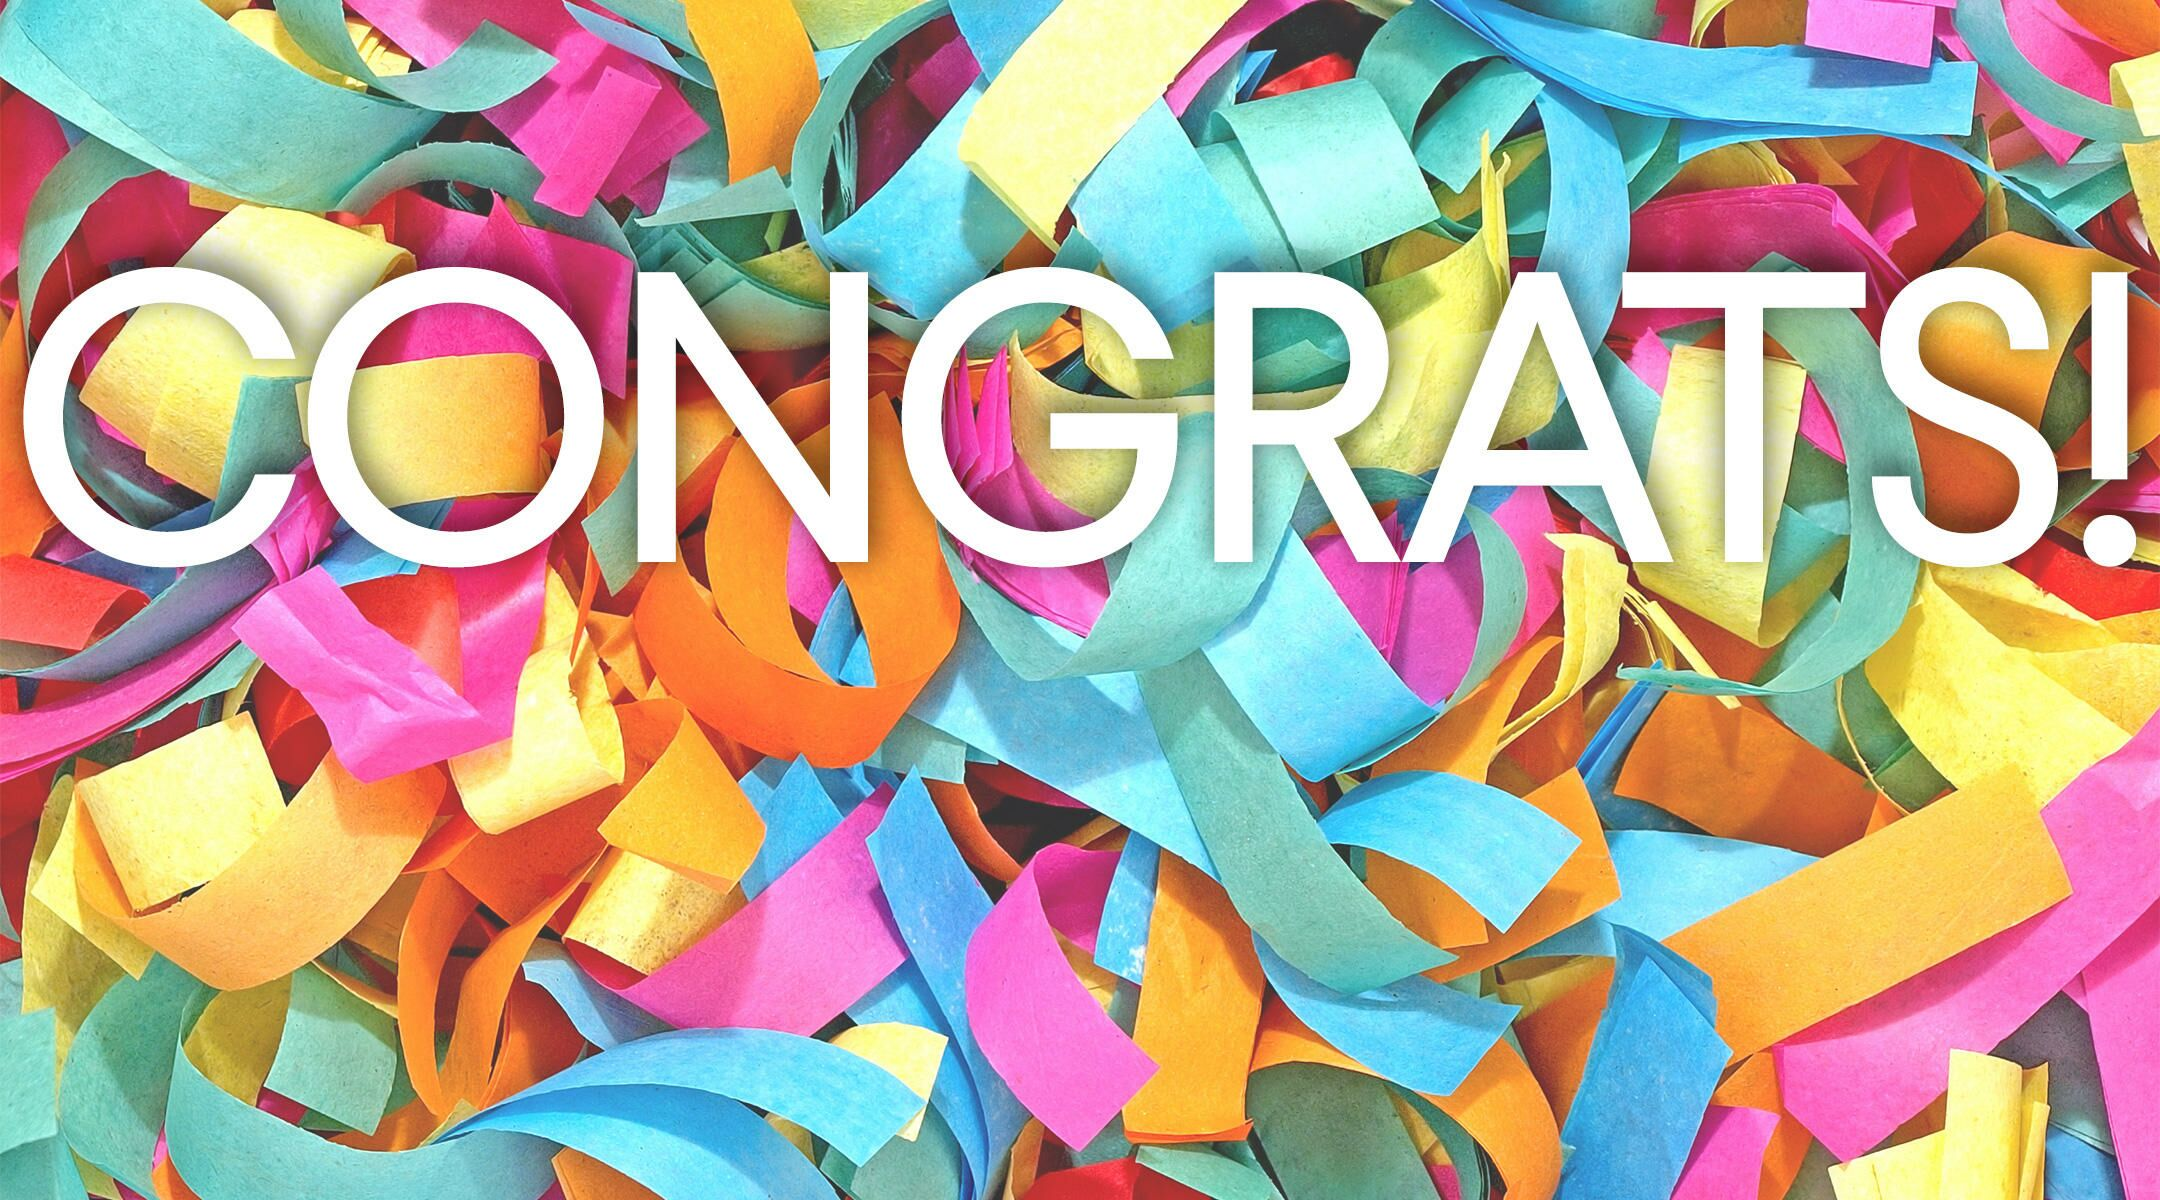 New Baby Wishes: Congratulations on New Baby